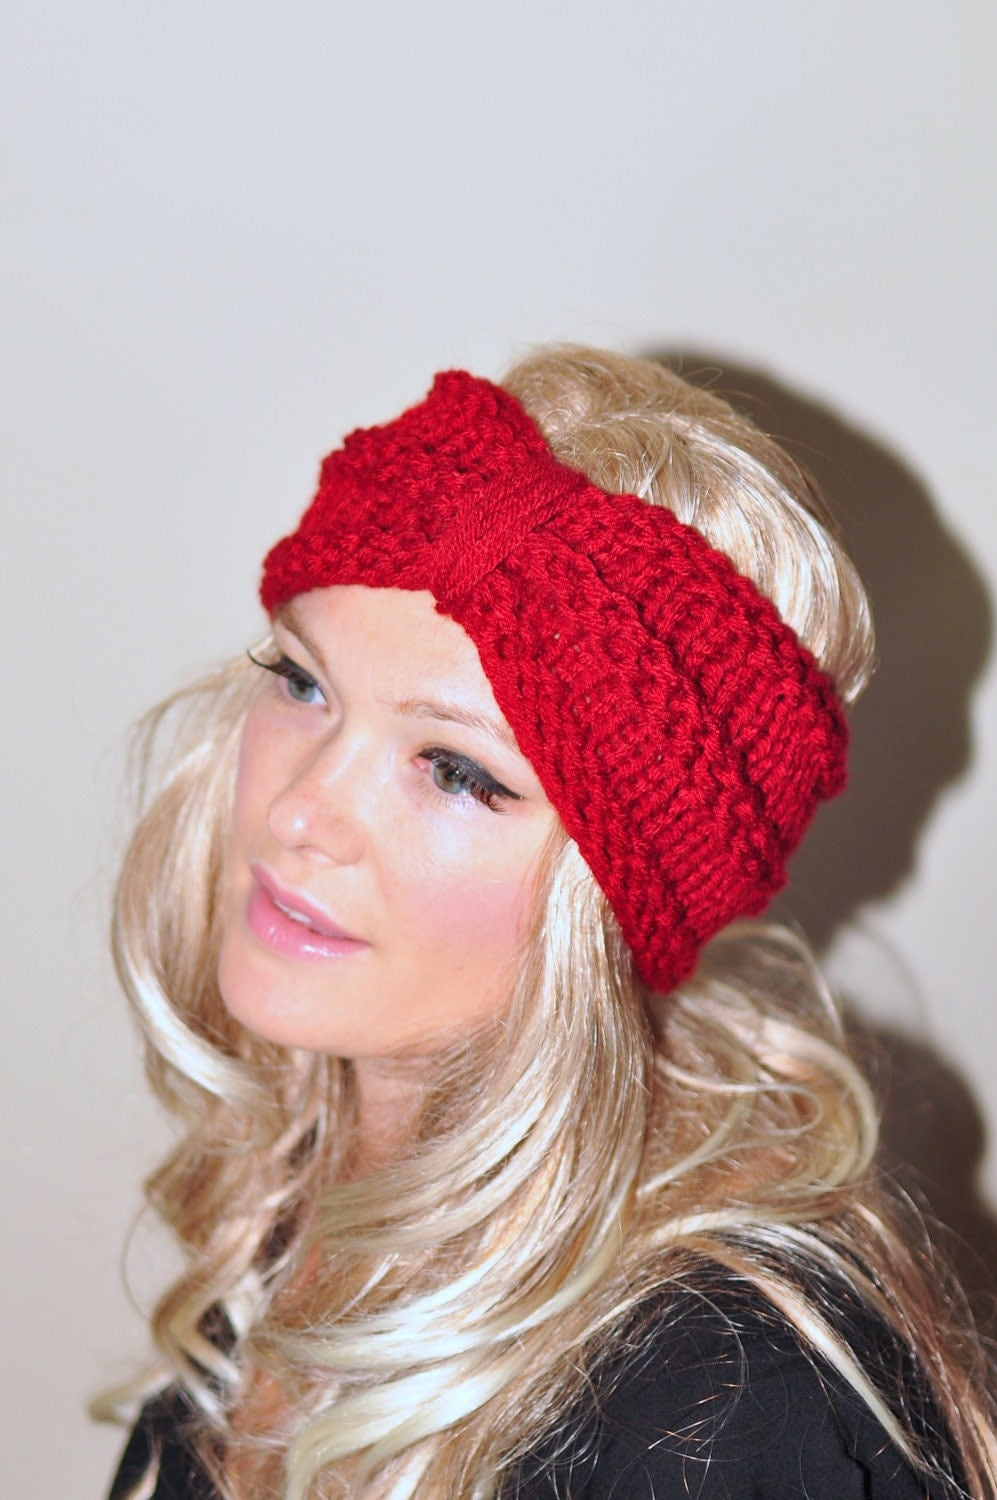 Turban Headband Crochet Head Wrap Knit Ear Warmer Earwarmer